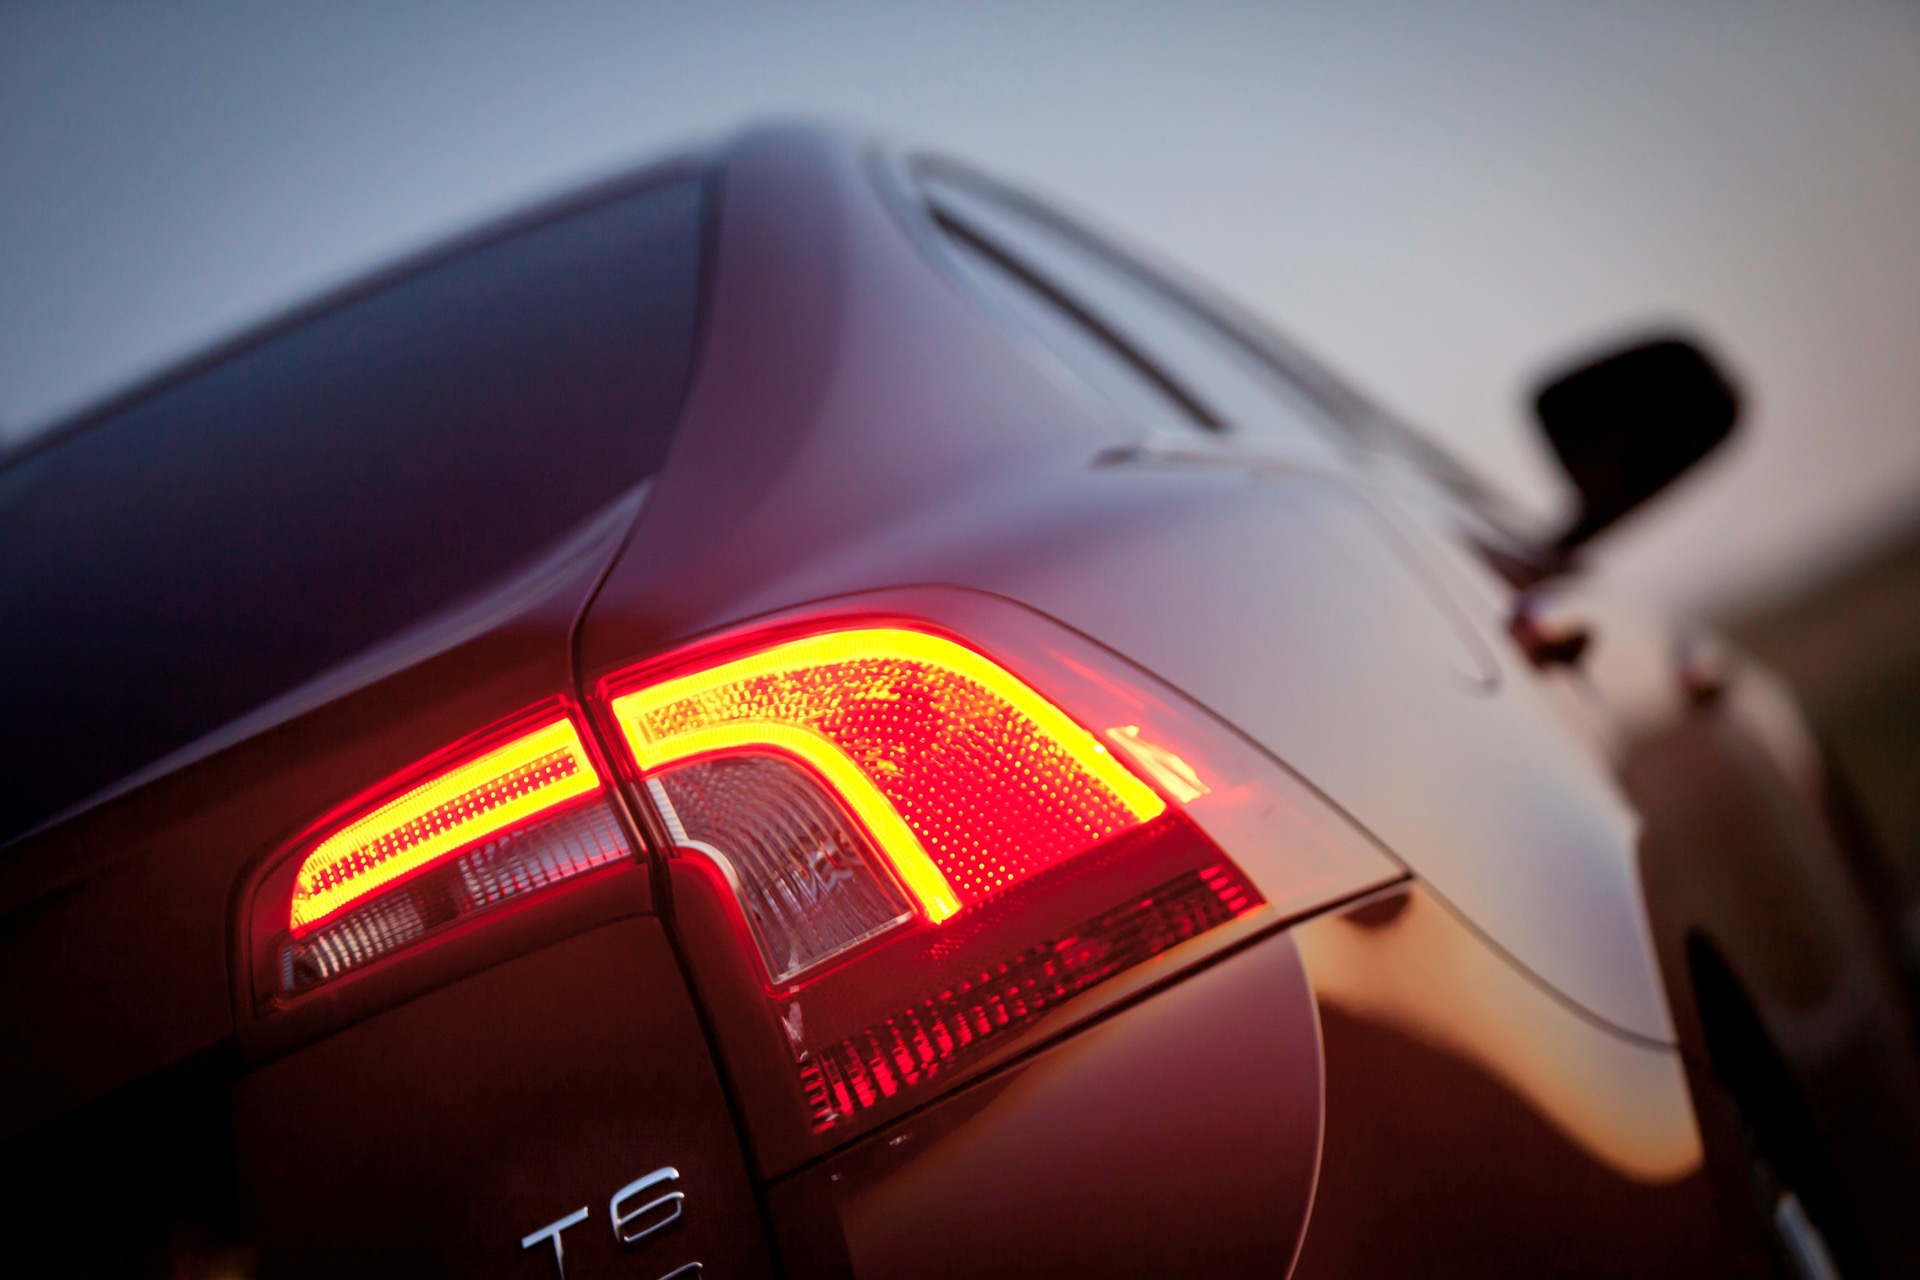 S60 T6 Awd Exterior Detail -  Volvo